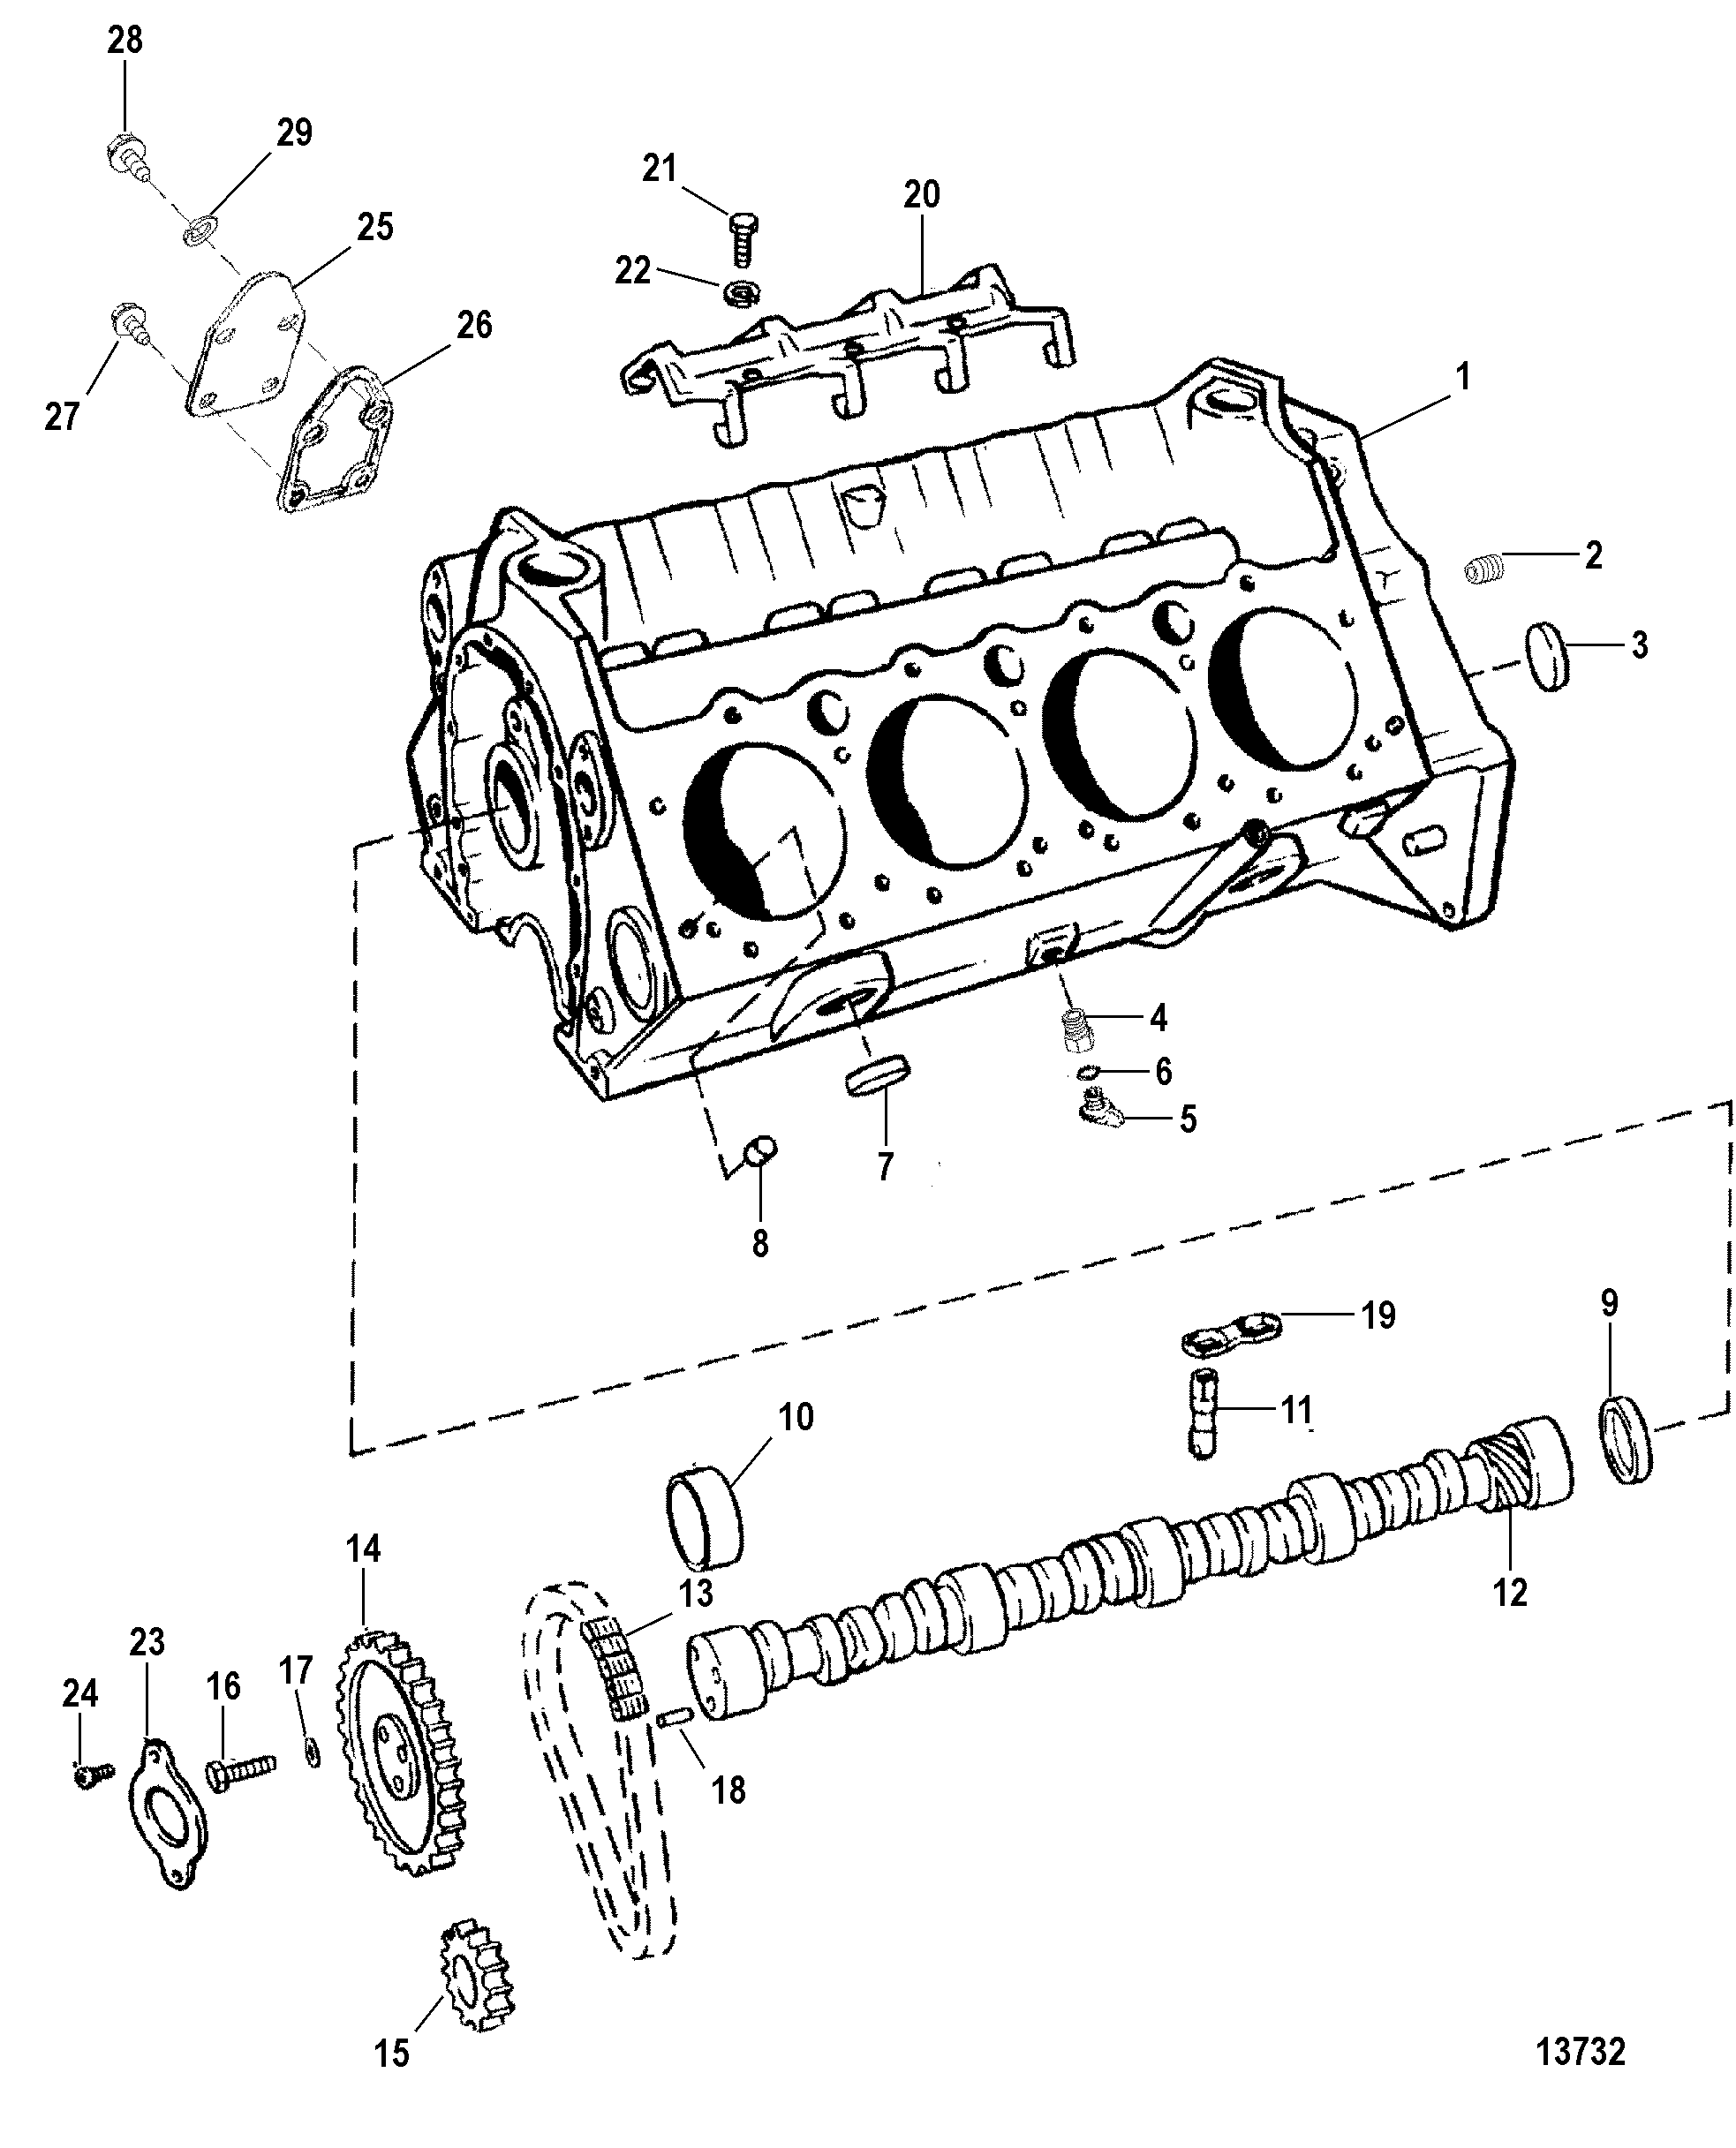 Hardin Marine - Cylinder Block And Camshaft (Roller Lifters) on